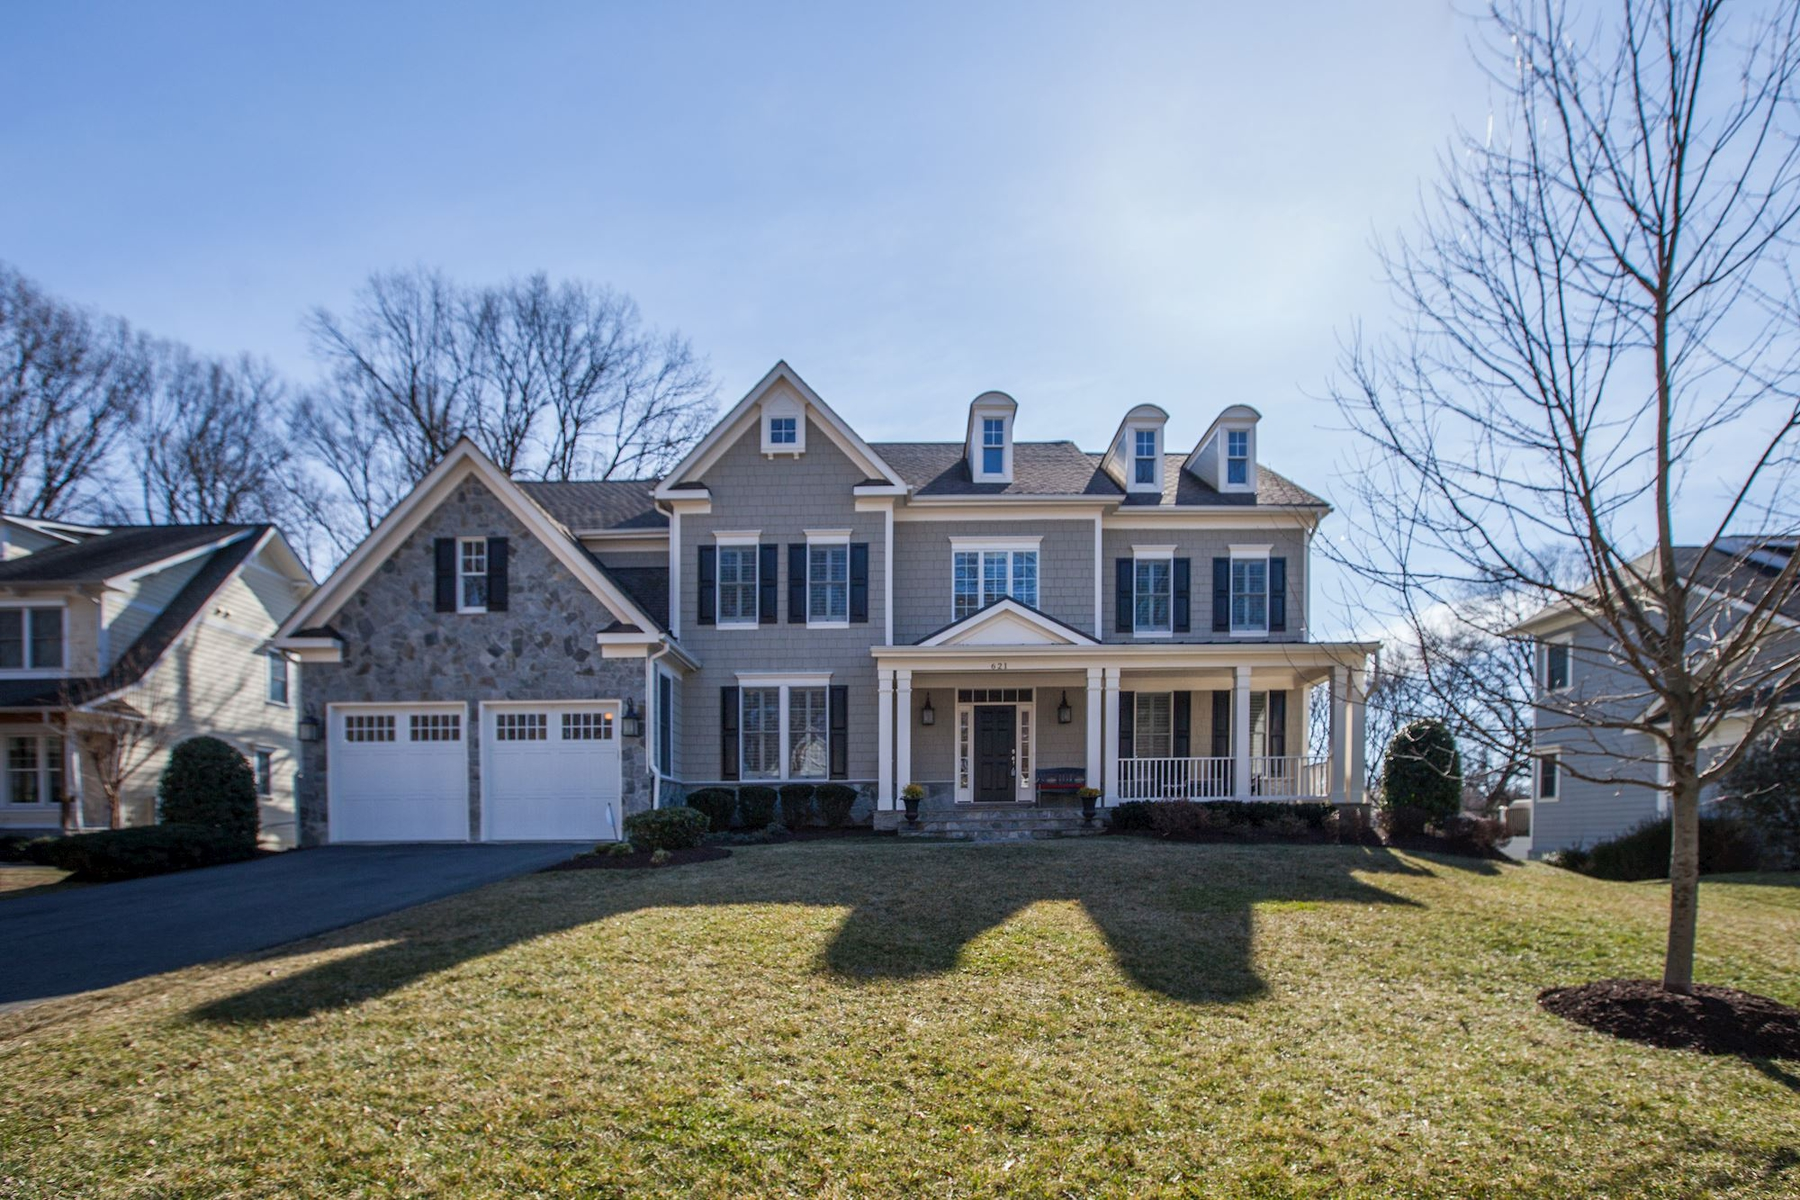 Single Family Home for Sale at Murmering Pines 621 SE Welles Street Se Vienna, Virginia 22180 United States